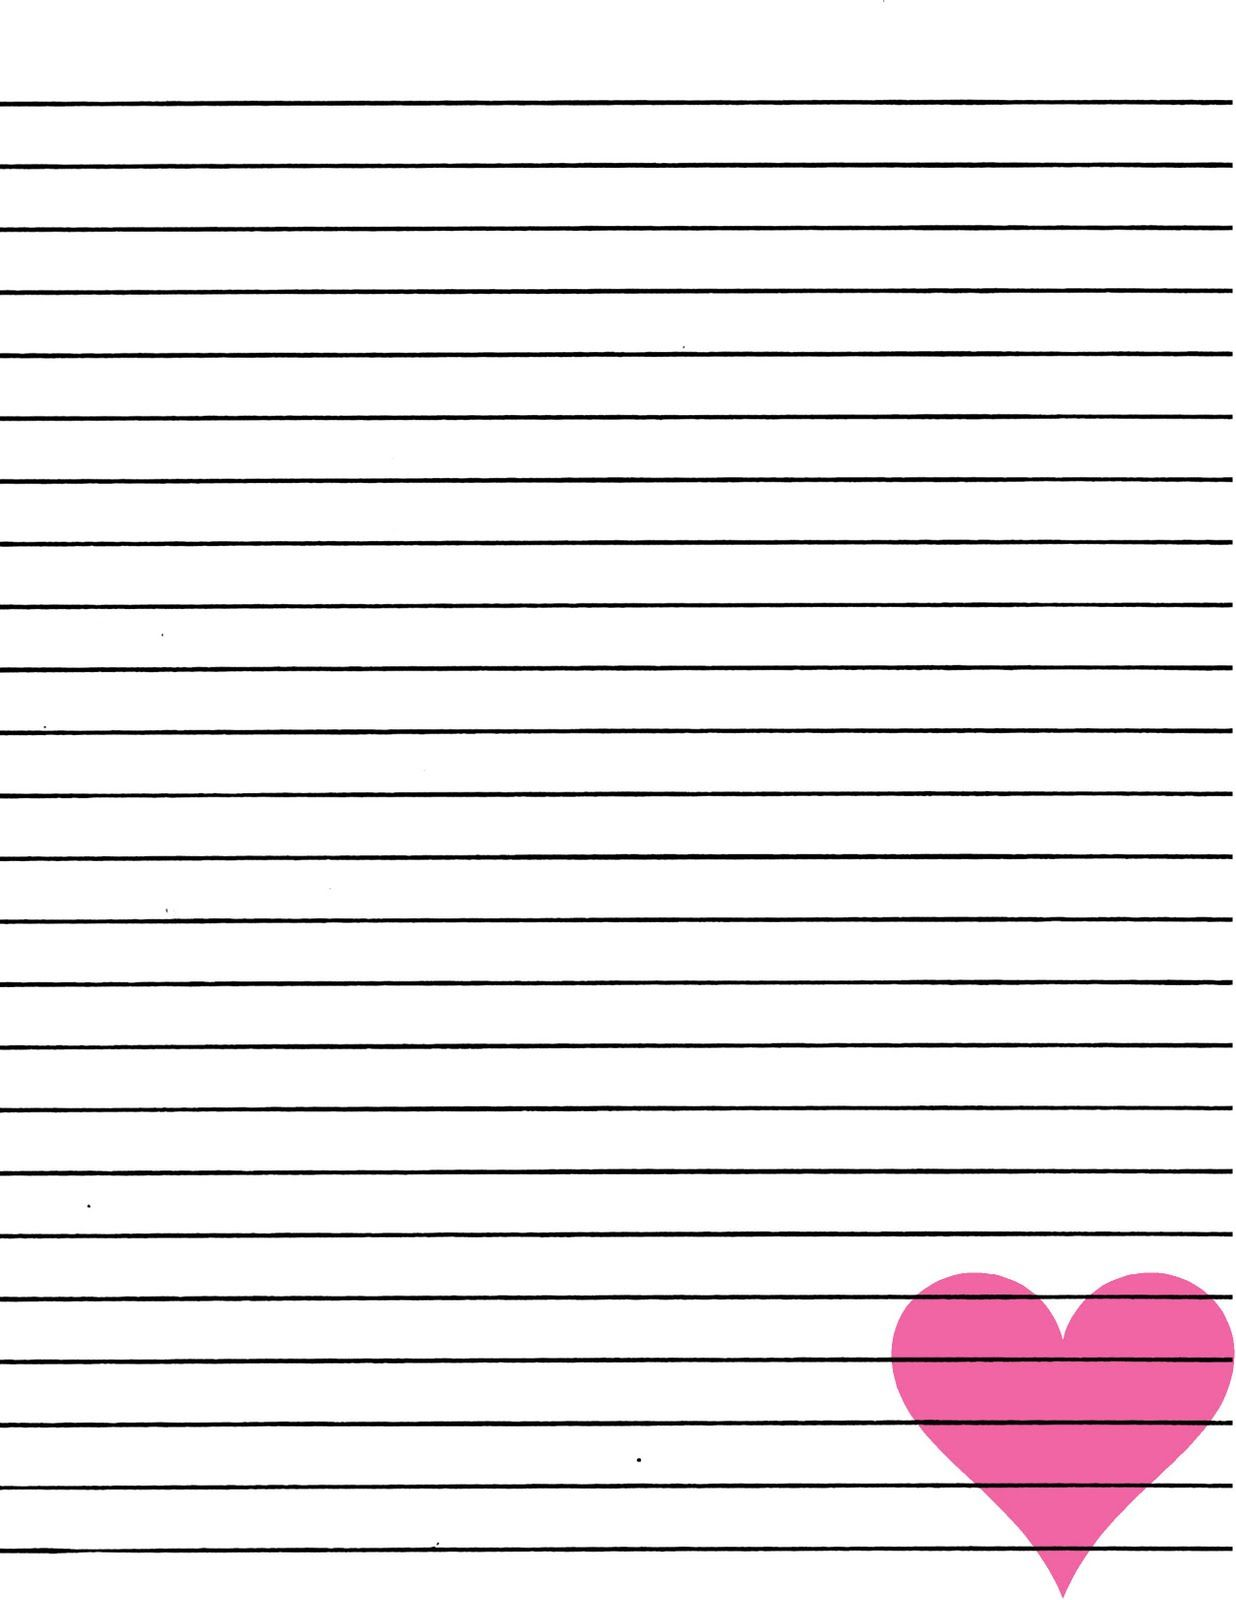 Printable Lined Paper Template – Blank Lined Writing Paper